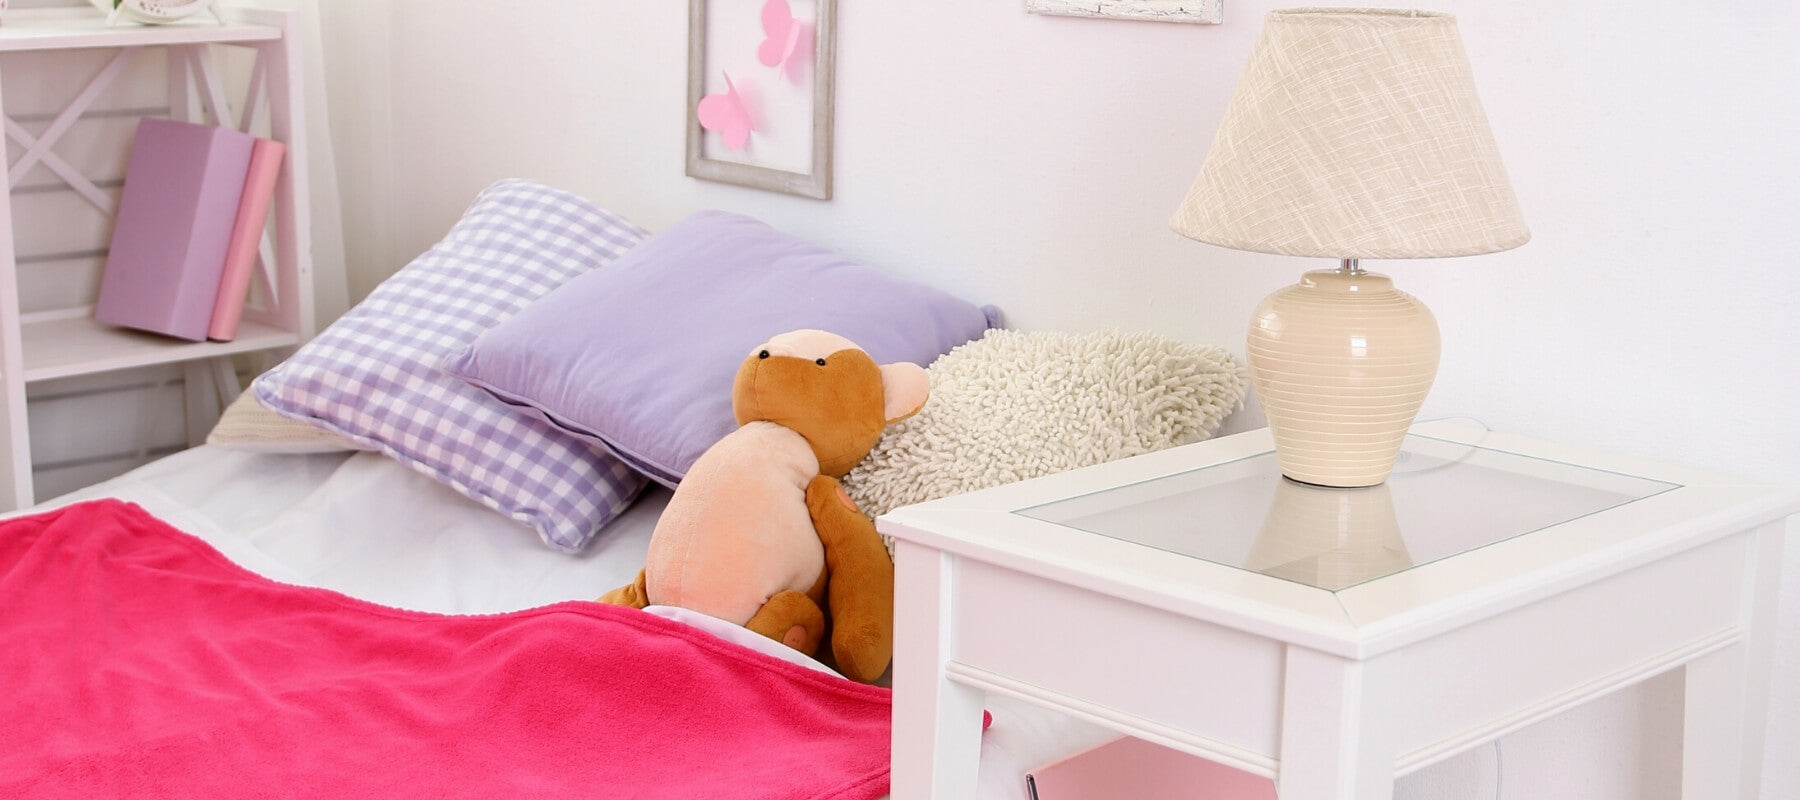 A nightstand next to a child's bed